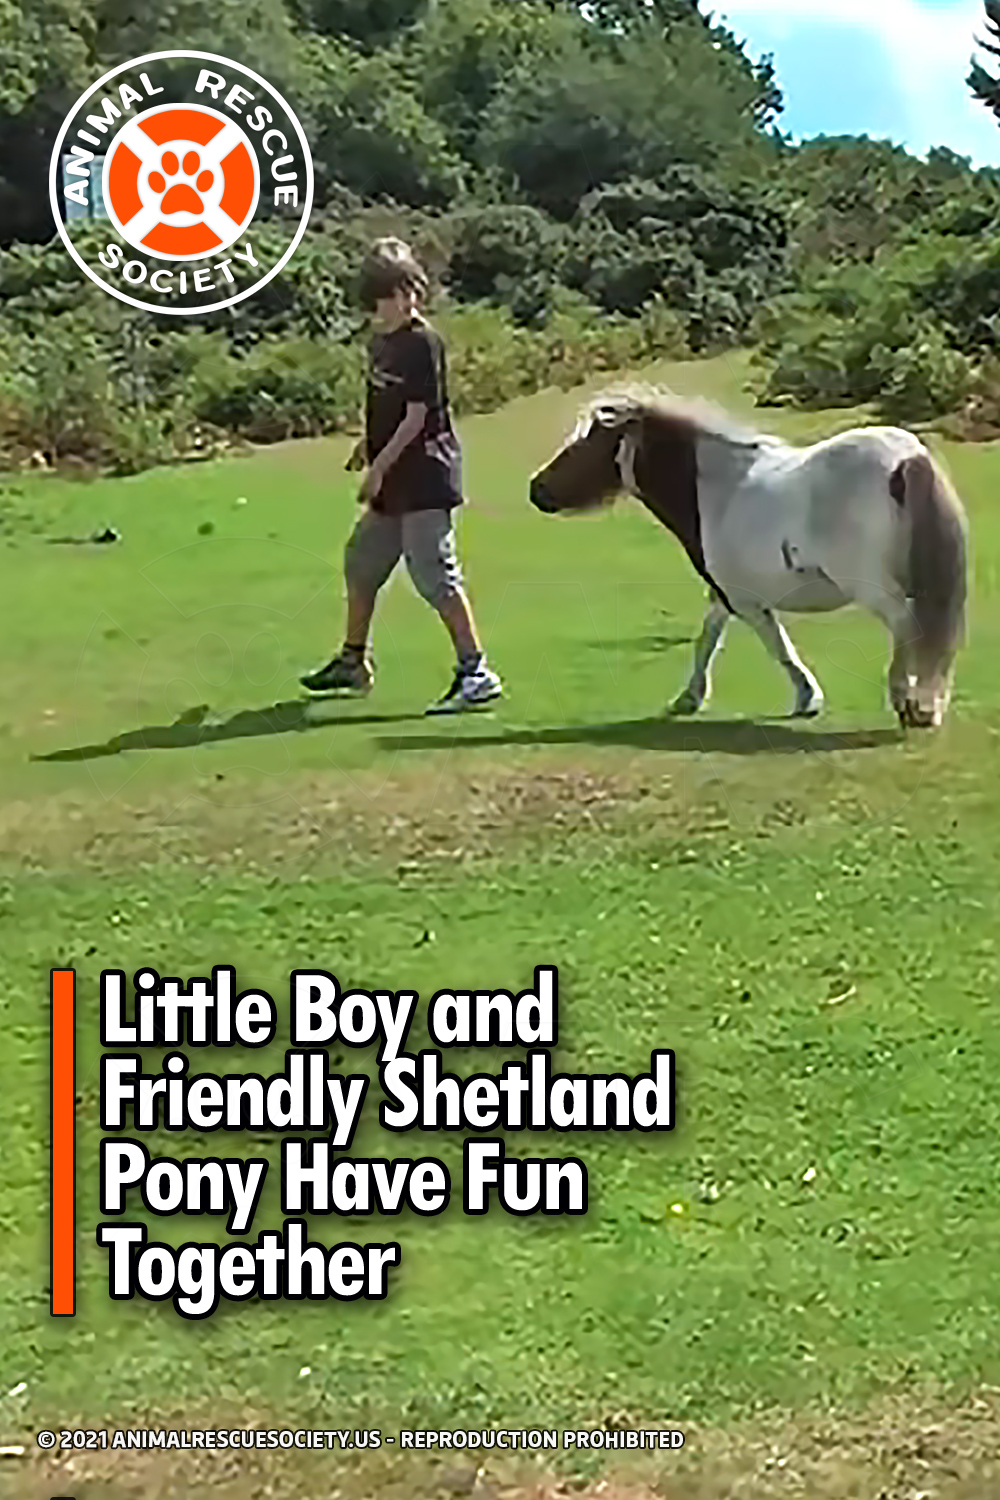 Little Boy and Friendly Shetland Pony Have Fun Together